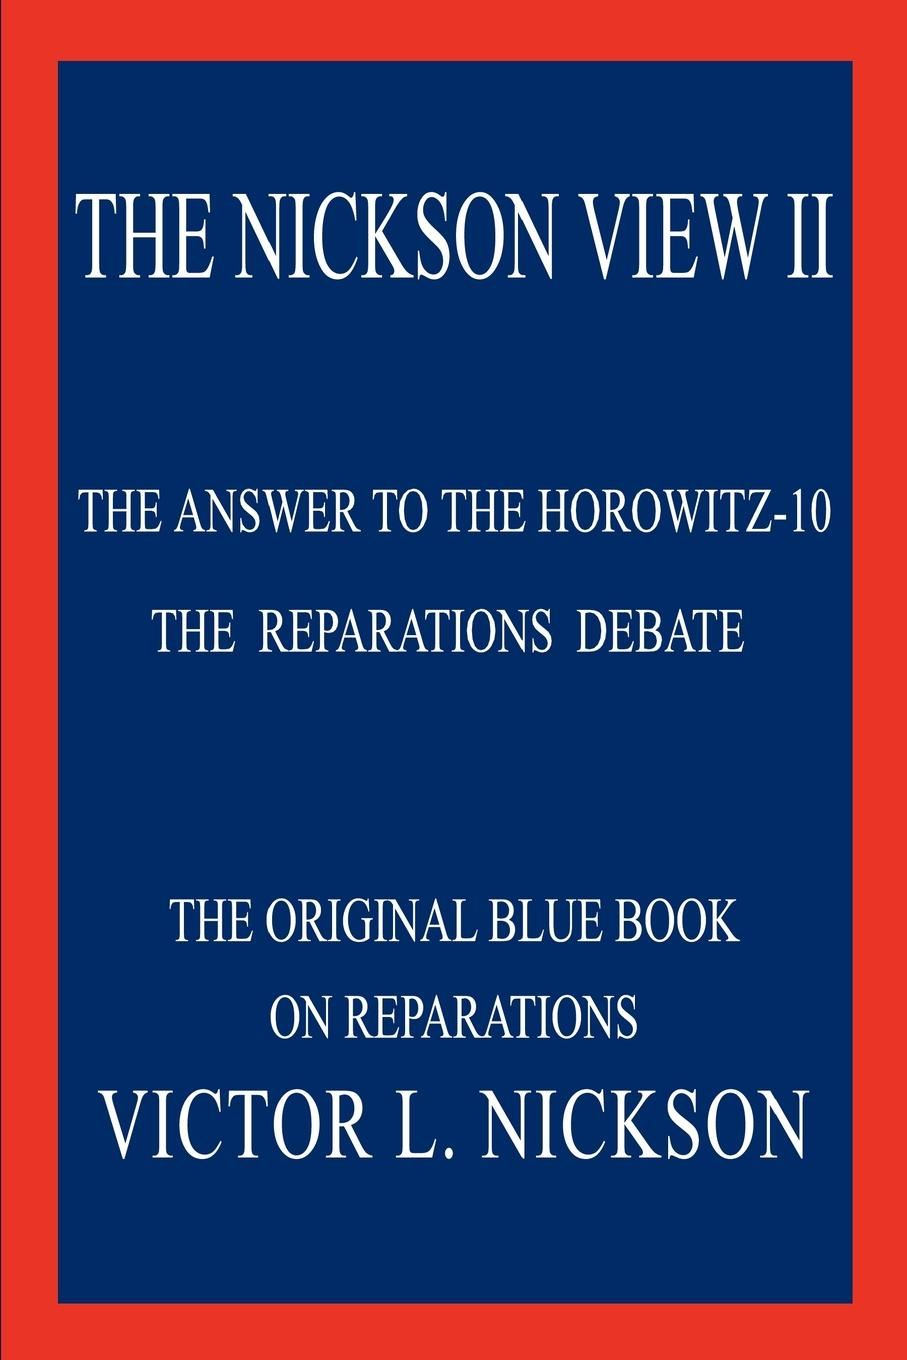 Victor L. Nickson THE NICKSON VIEW II. THE ANSWER TO THE HOROWITZ-10 цена и фото